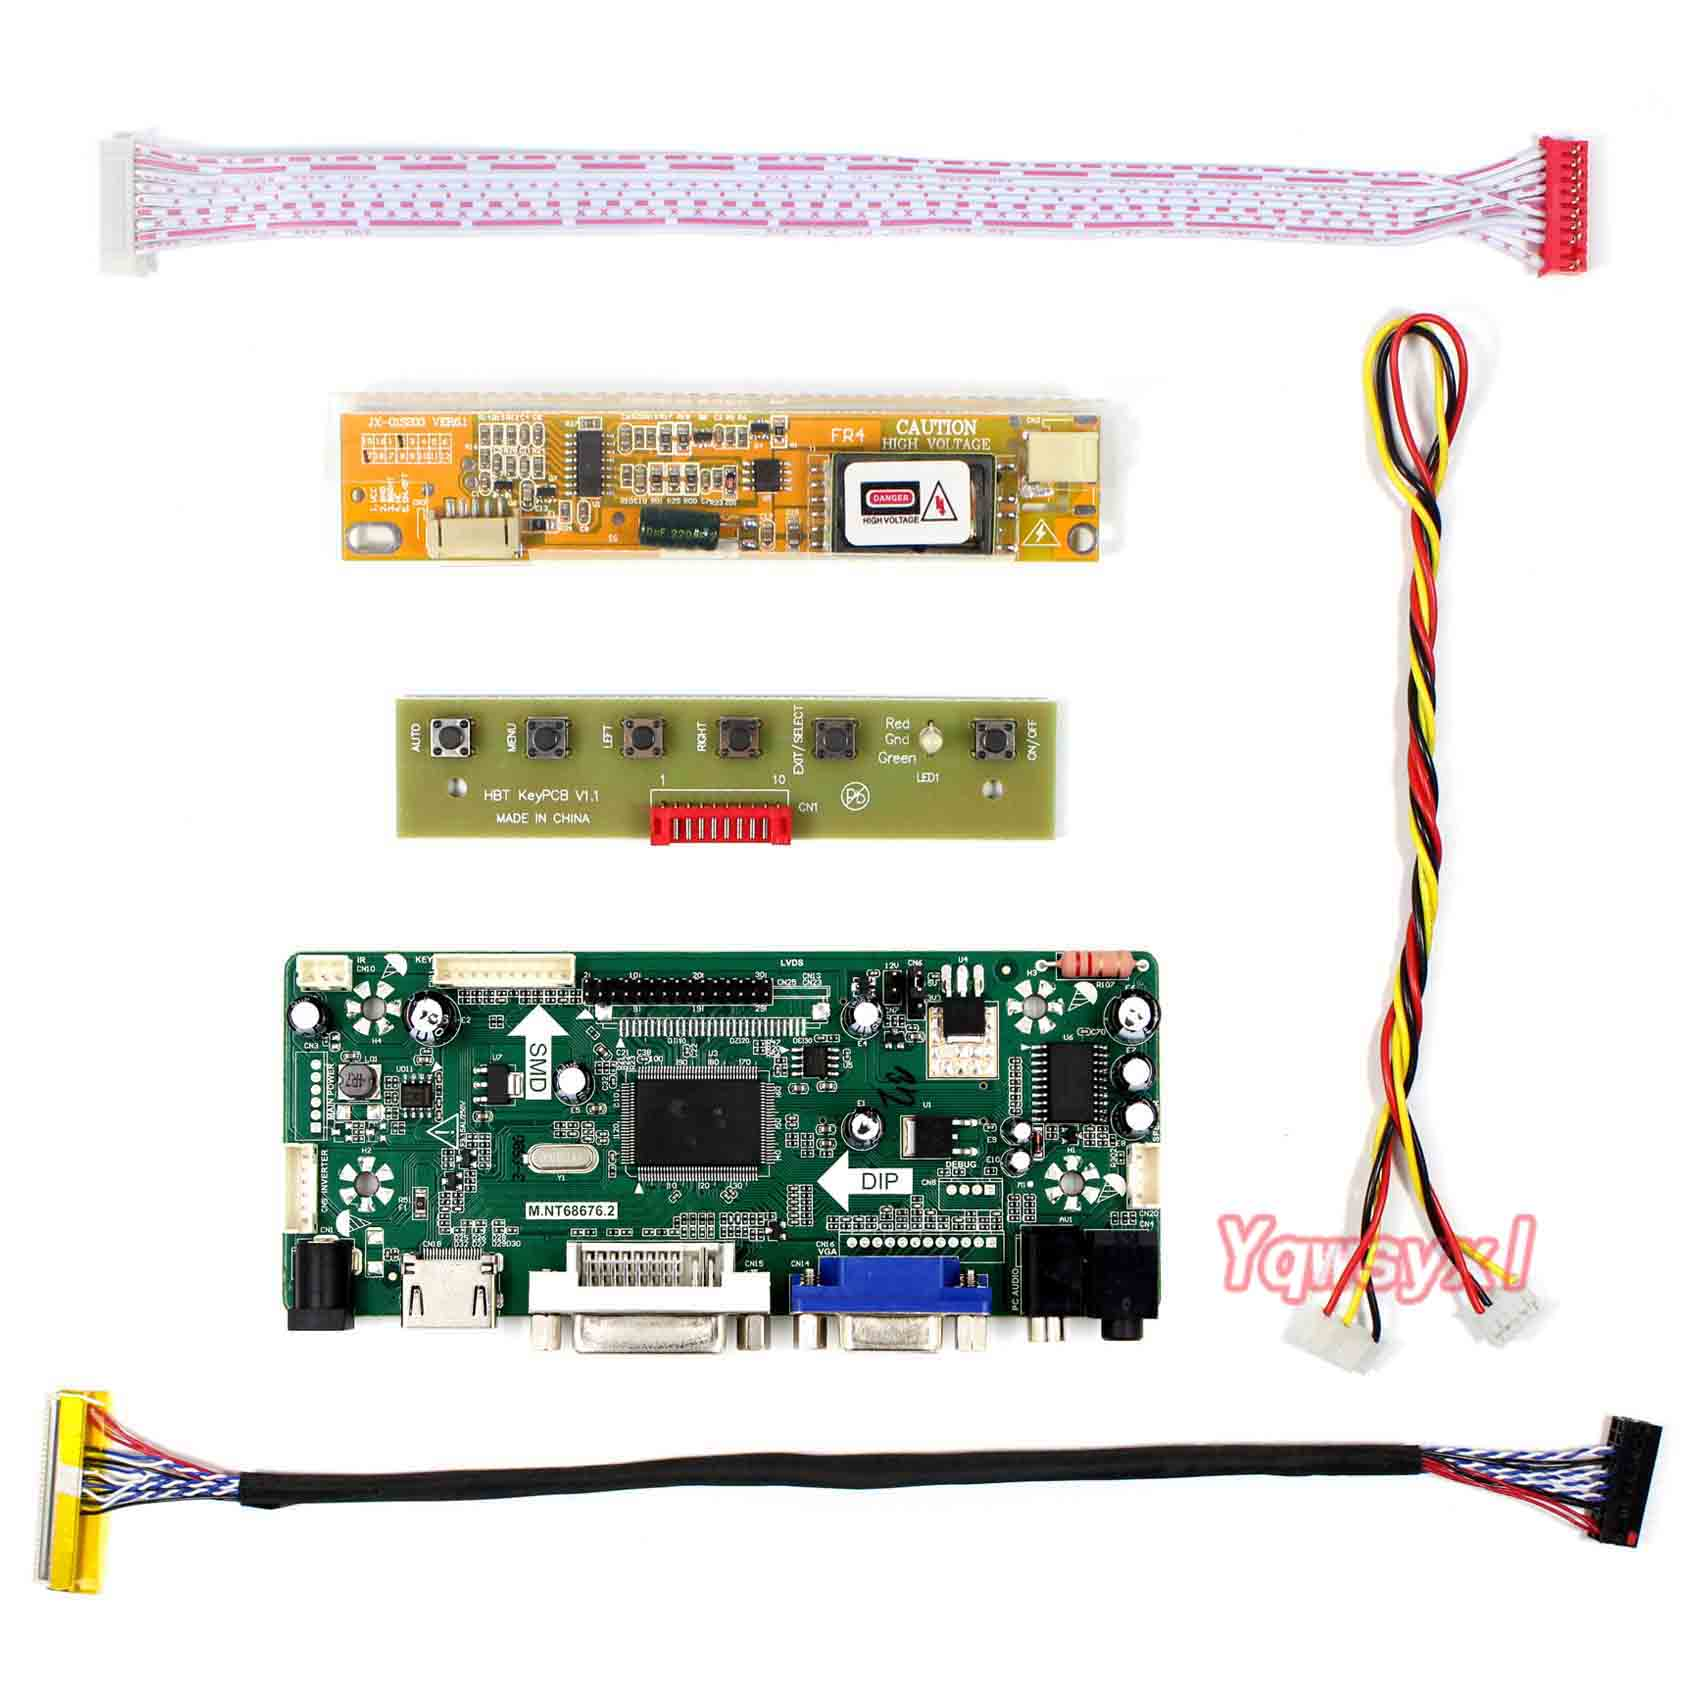 Yqwsyxl Control Board Monitor Kit For LP154WX4(TL)(C3)  LP154WX4-TLC3 HDMI + DVI + VGA LCD LED Screen Controller Board Driver